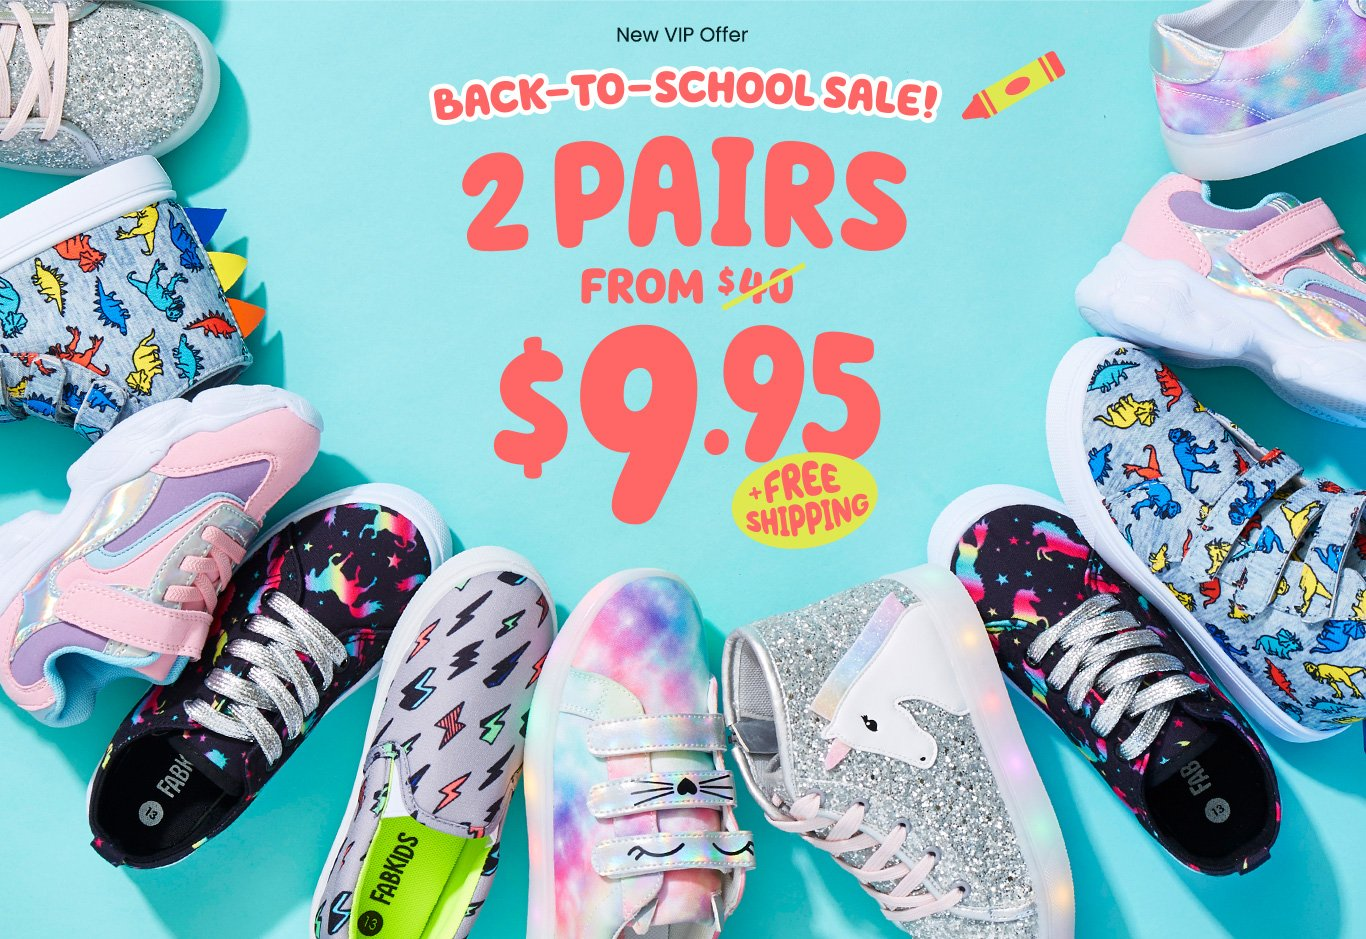 New VIP Offer - Back-To-School Sale! - 2 pairs from $9.95 + Free Shipping*